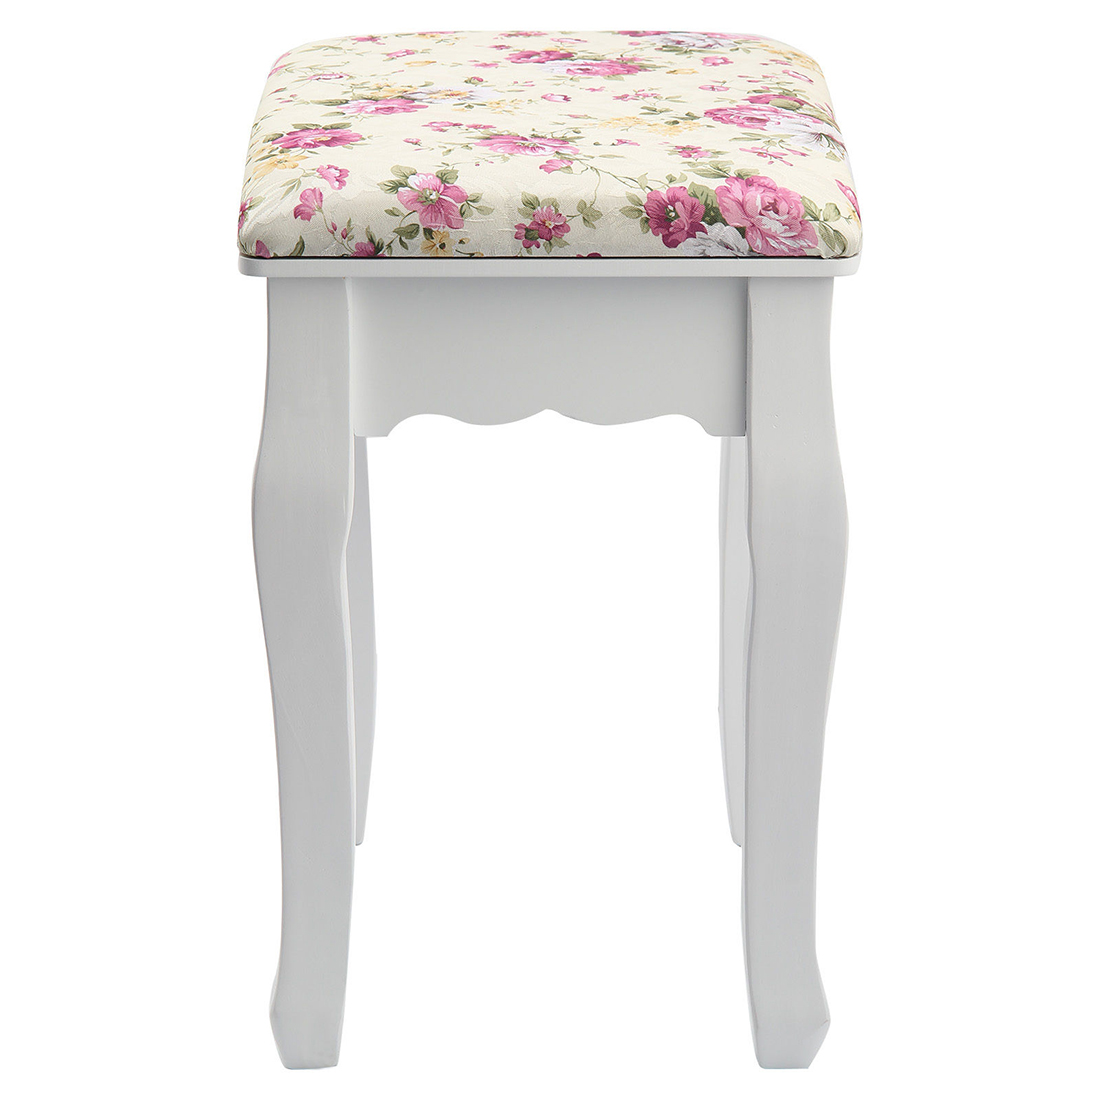 rose vintage dressing table stool padded piano chair rest. Black Bedroom Furniture Sets. Home Design Ideas